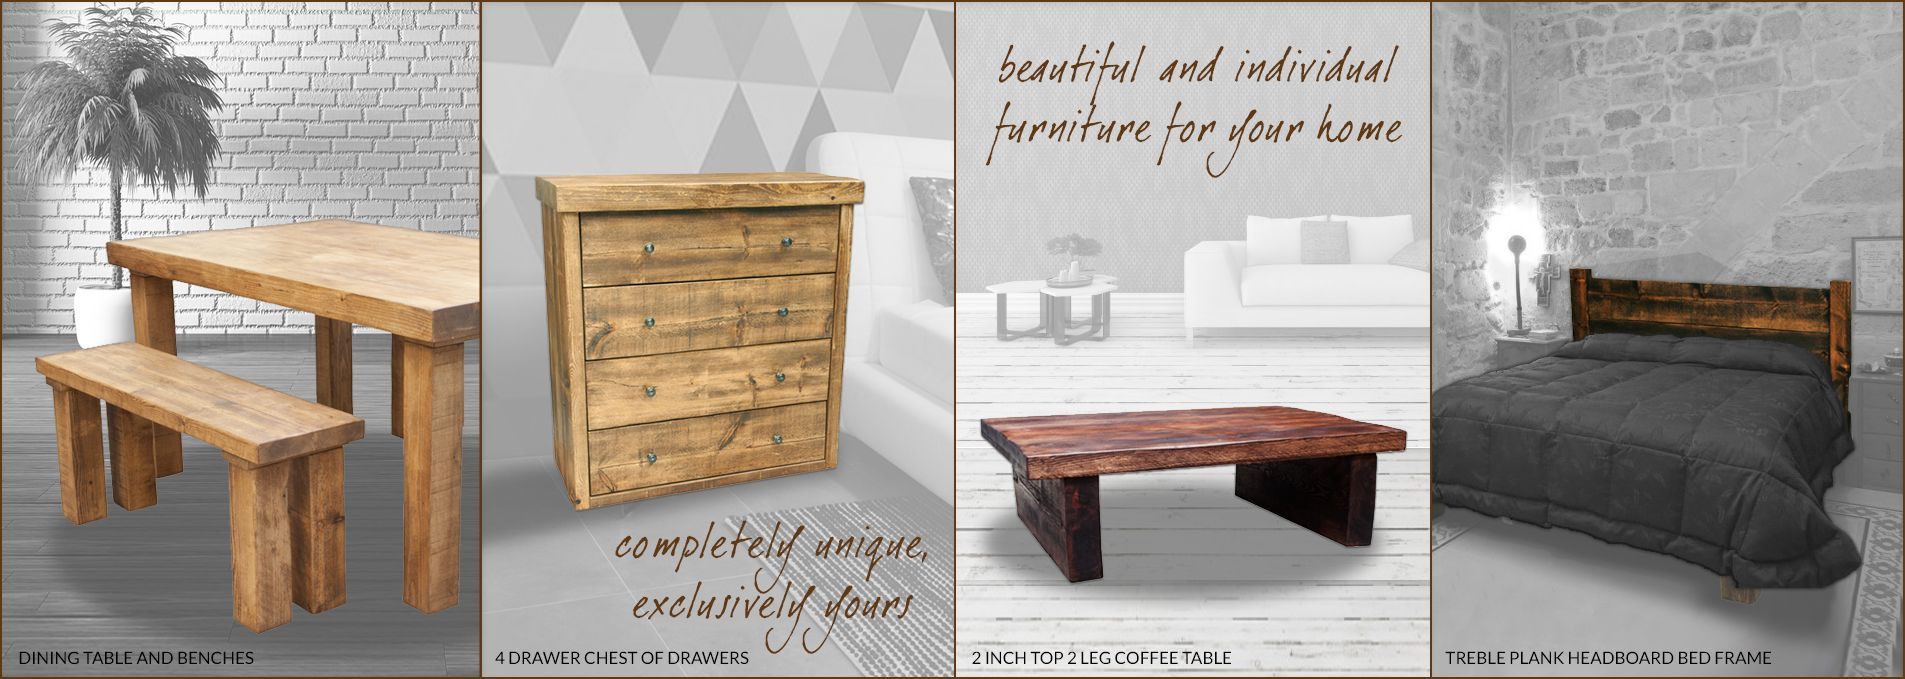 Handmade Rustic Furniture | Solid Wood Furniture From FCF UK ...